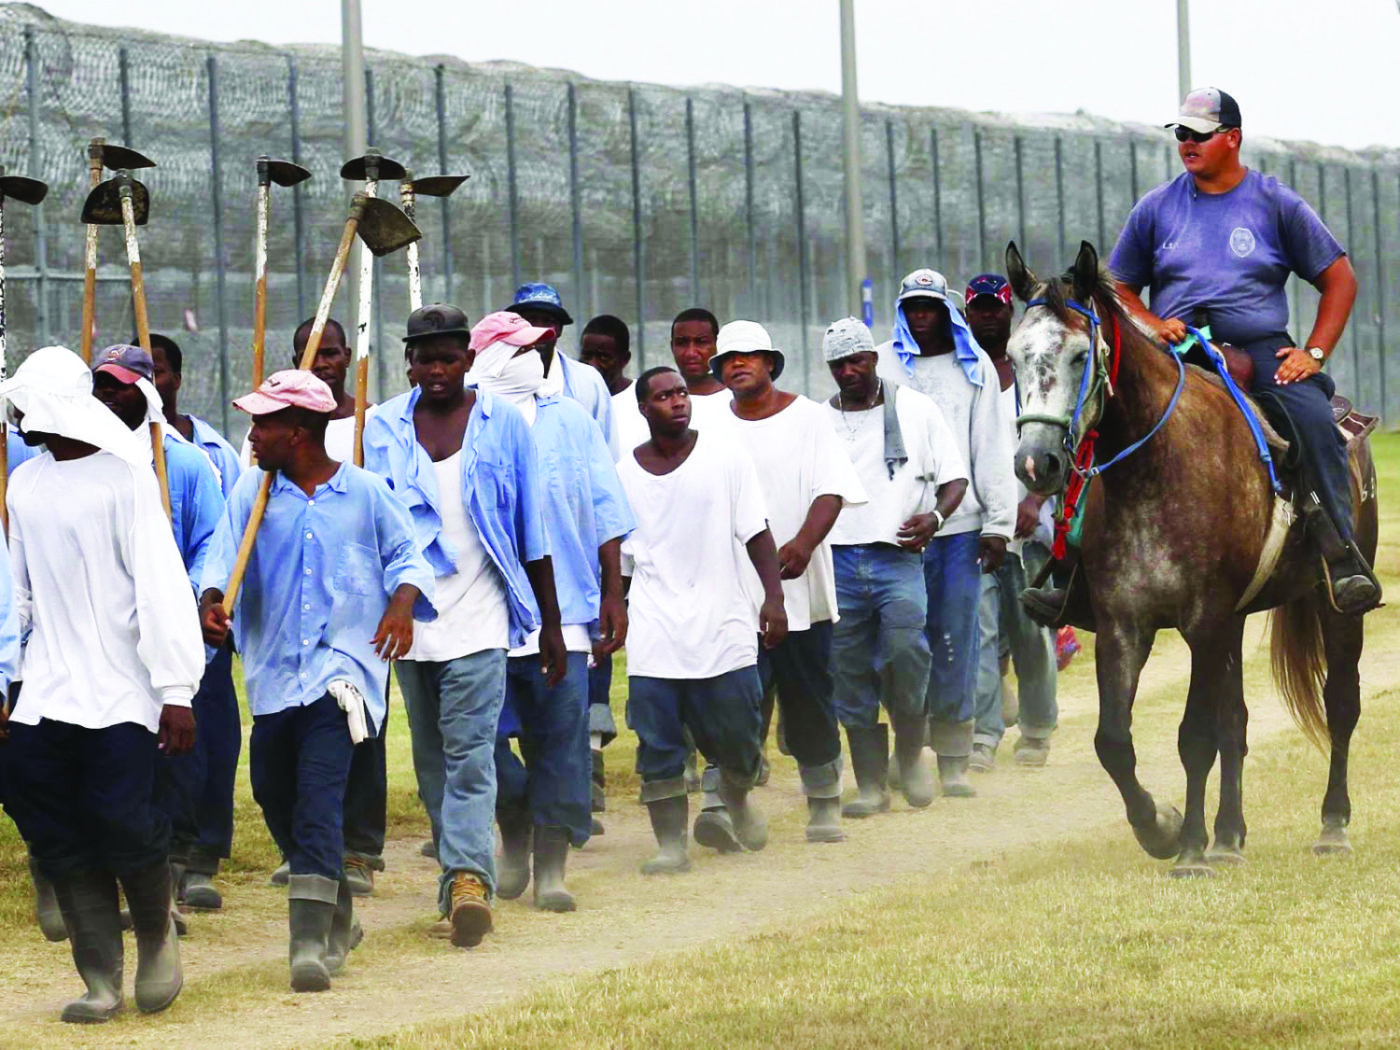 Angola-prisoners-marched-to-farm-work-1400x1050, Louisiana: The last slave state in America, Behind Enemy Lines